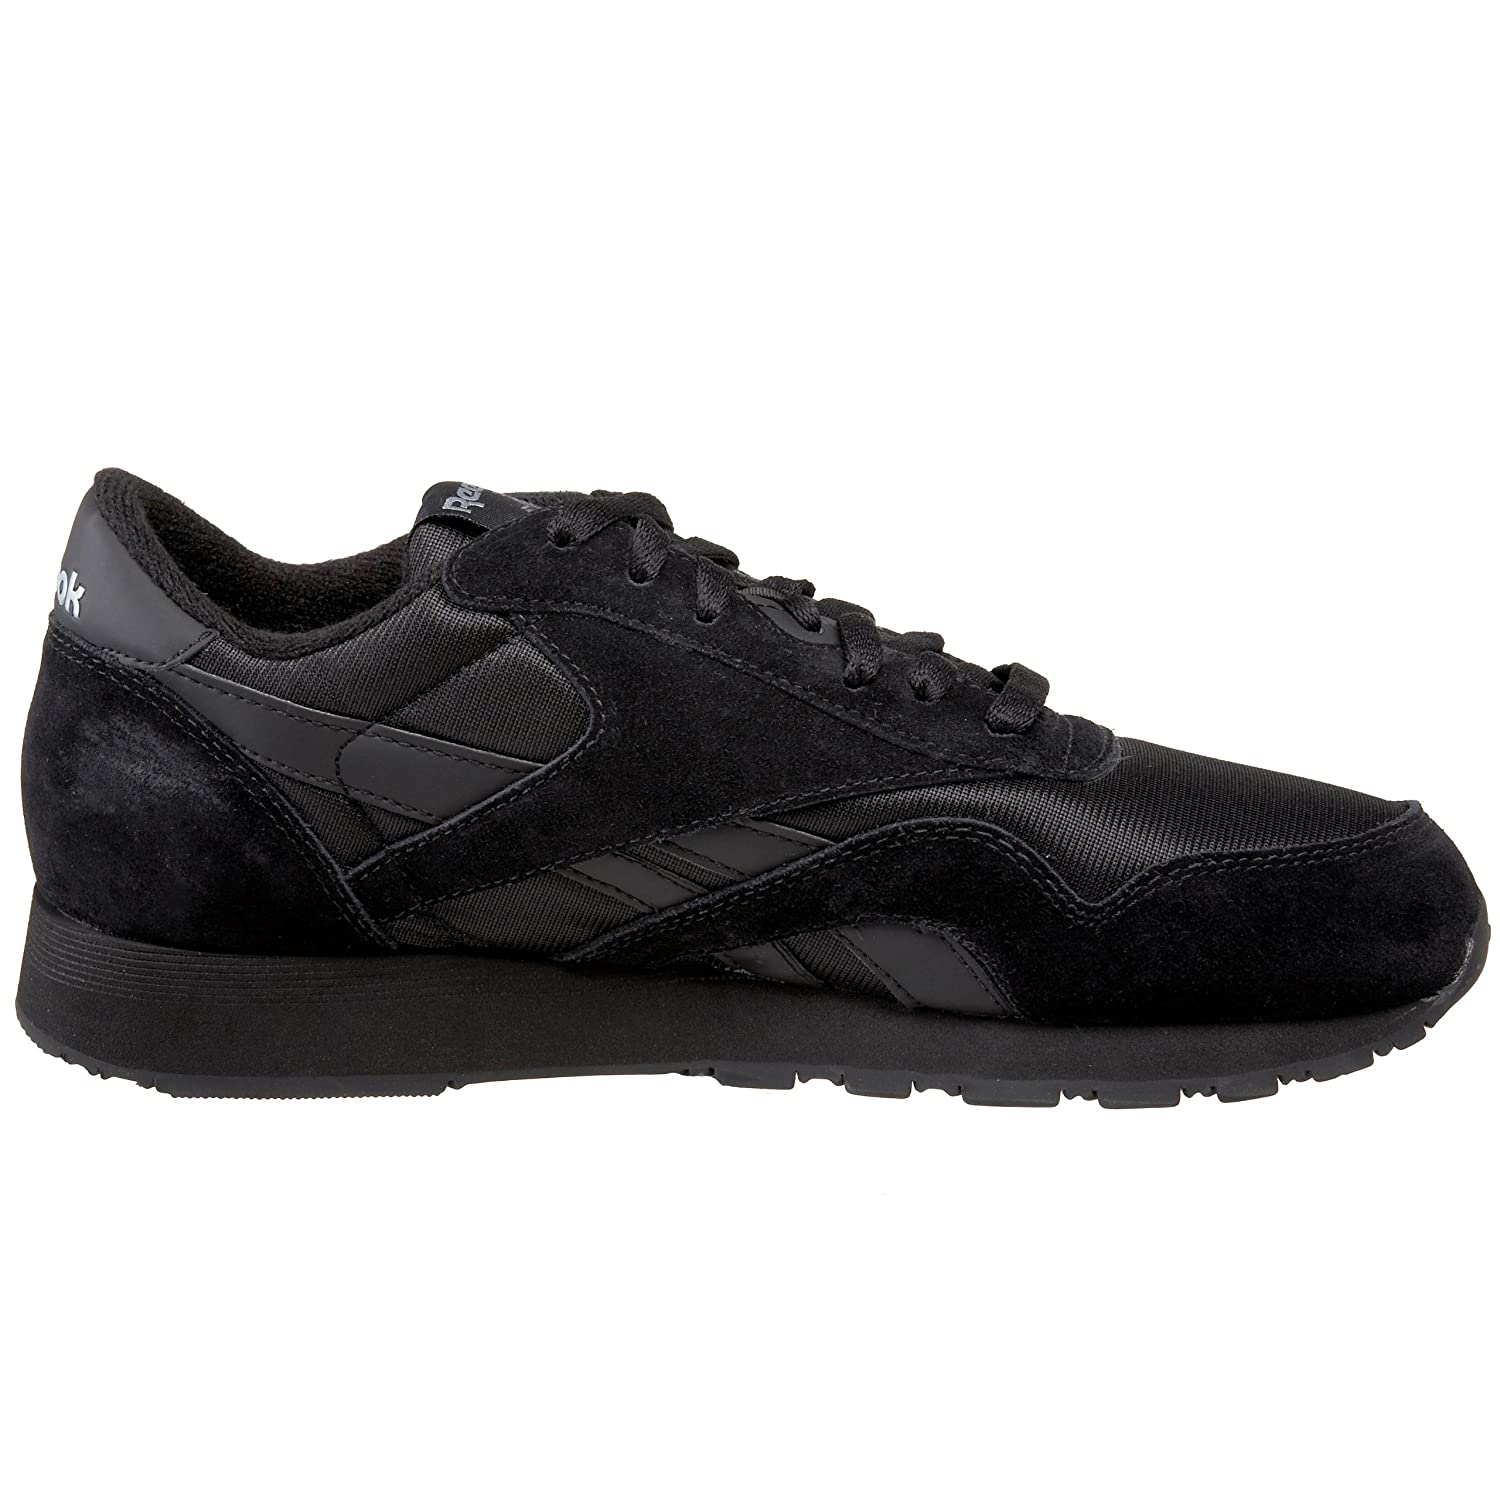 Reebok Zapatos De Venta Amazon GREjG